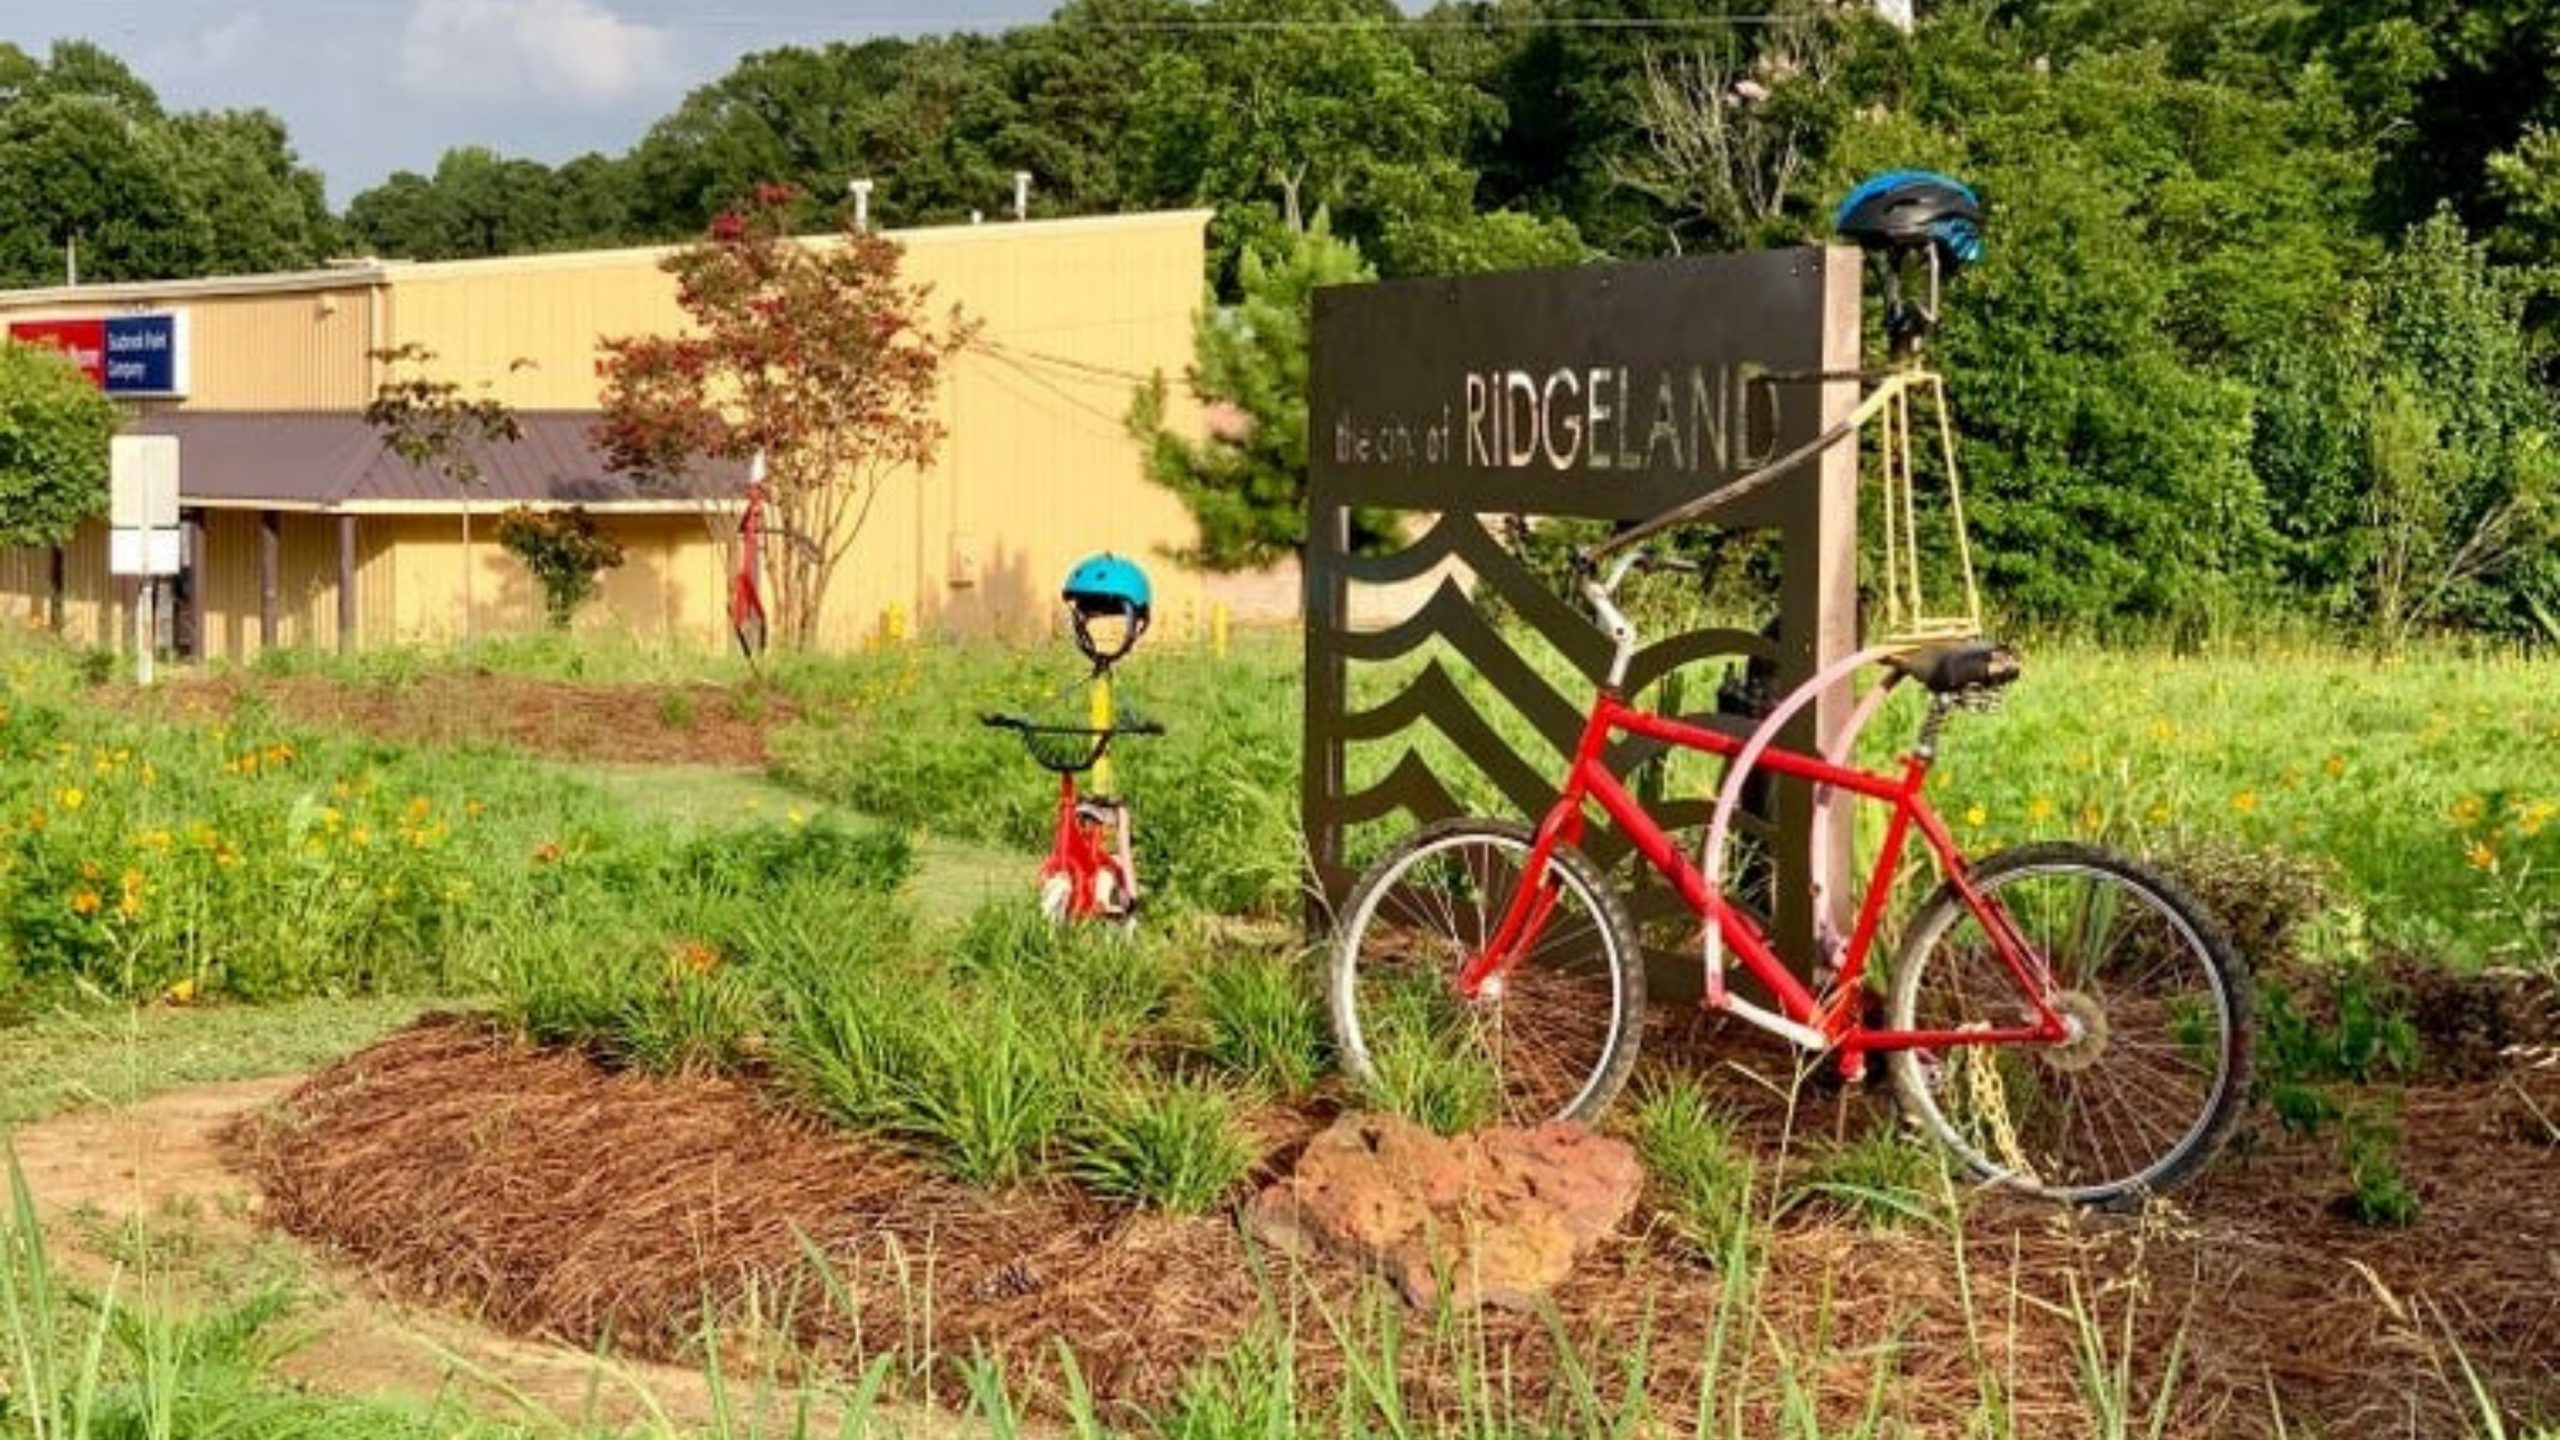 Keep Ridgeland Beautiful Transforms Bland Spaces into Beautiful Places